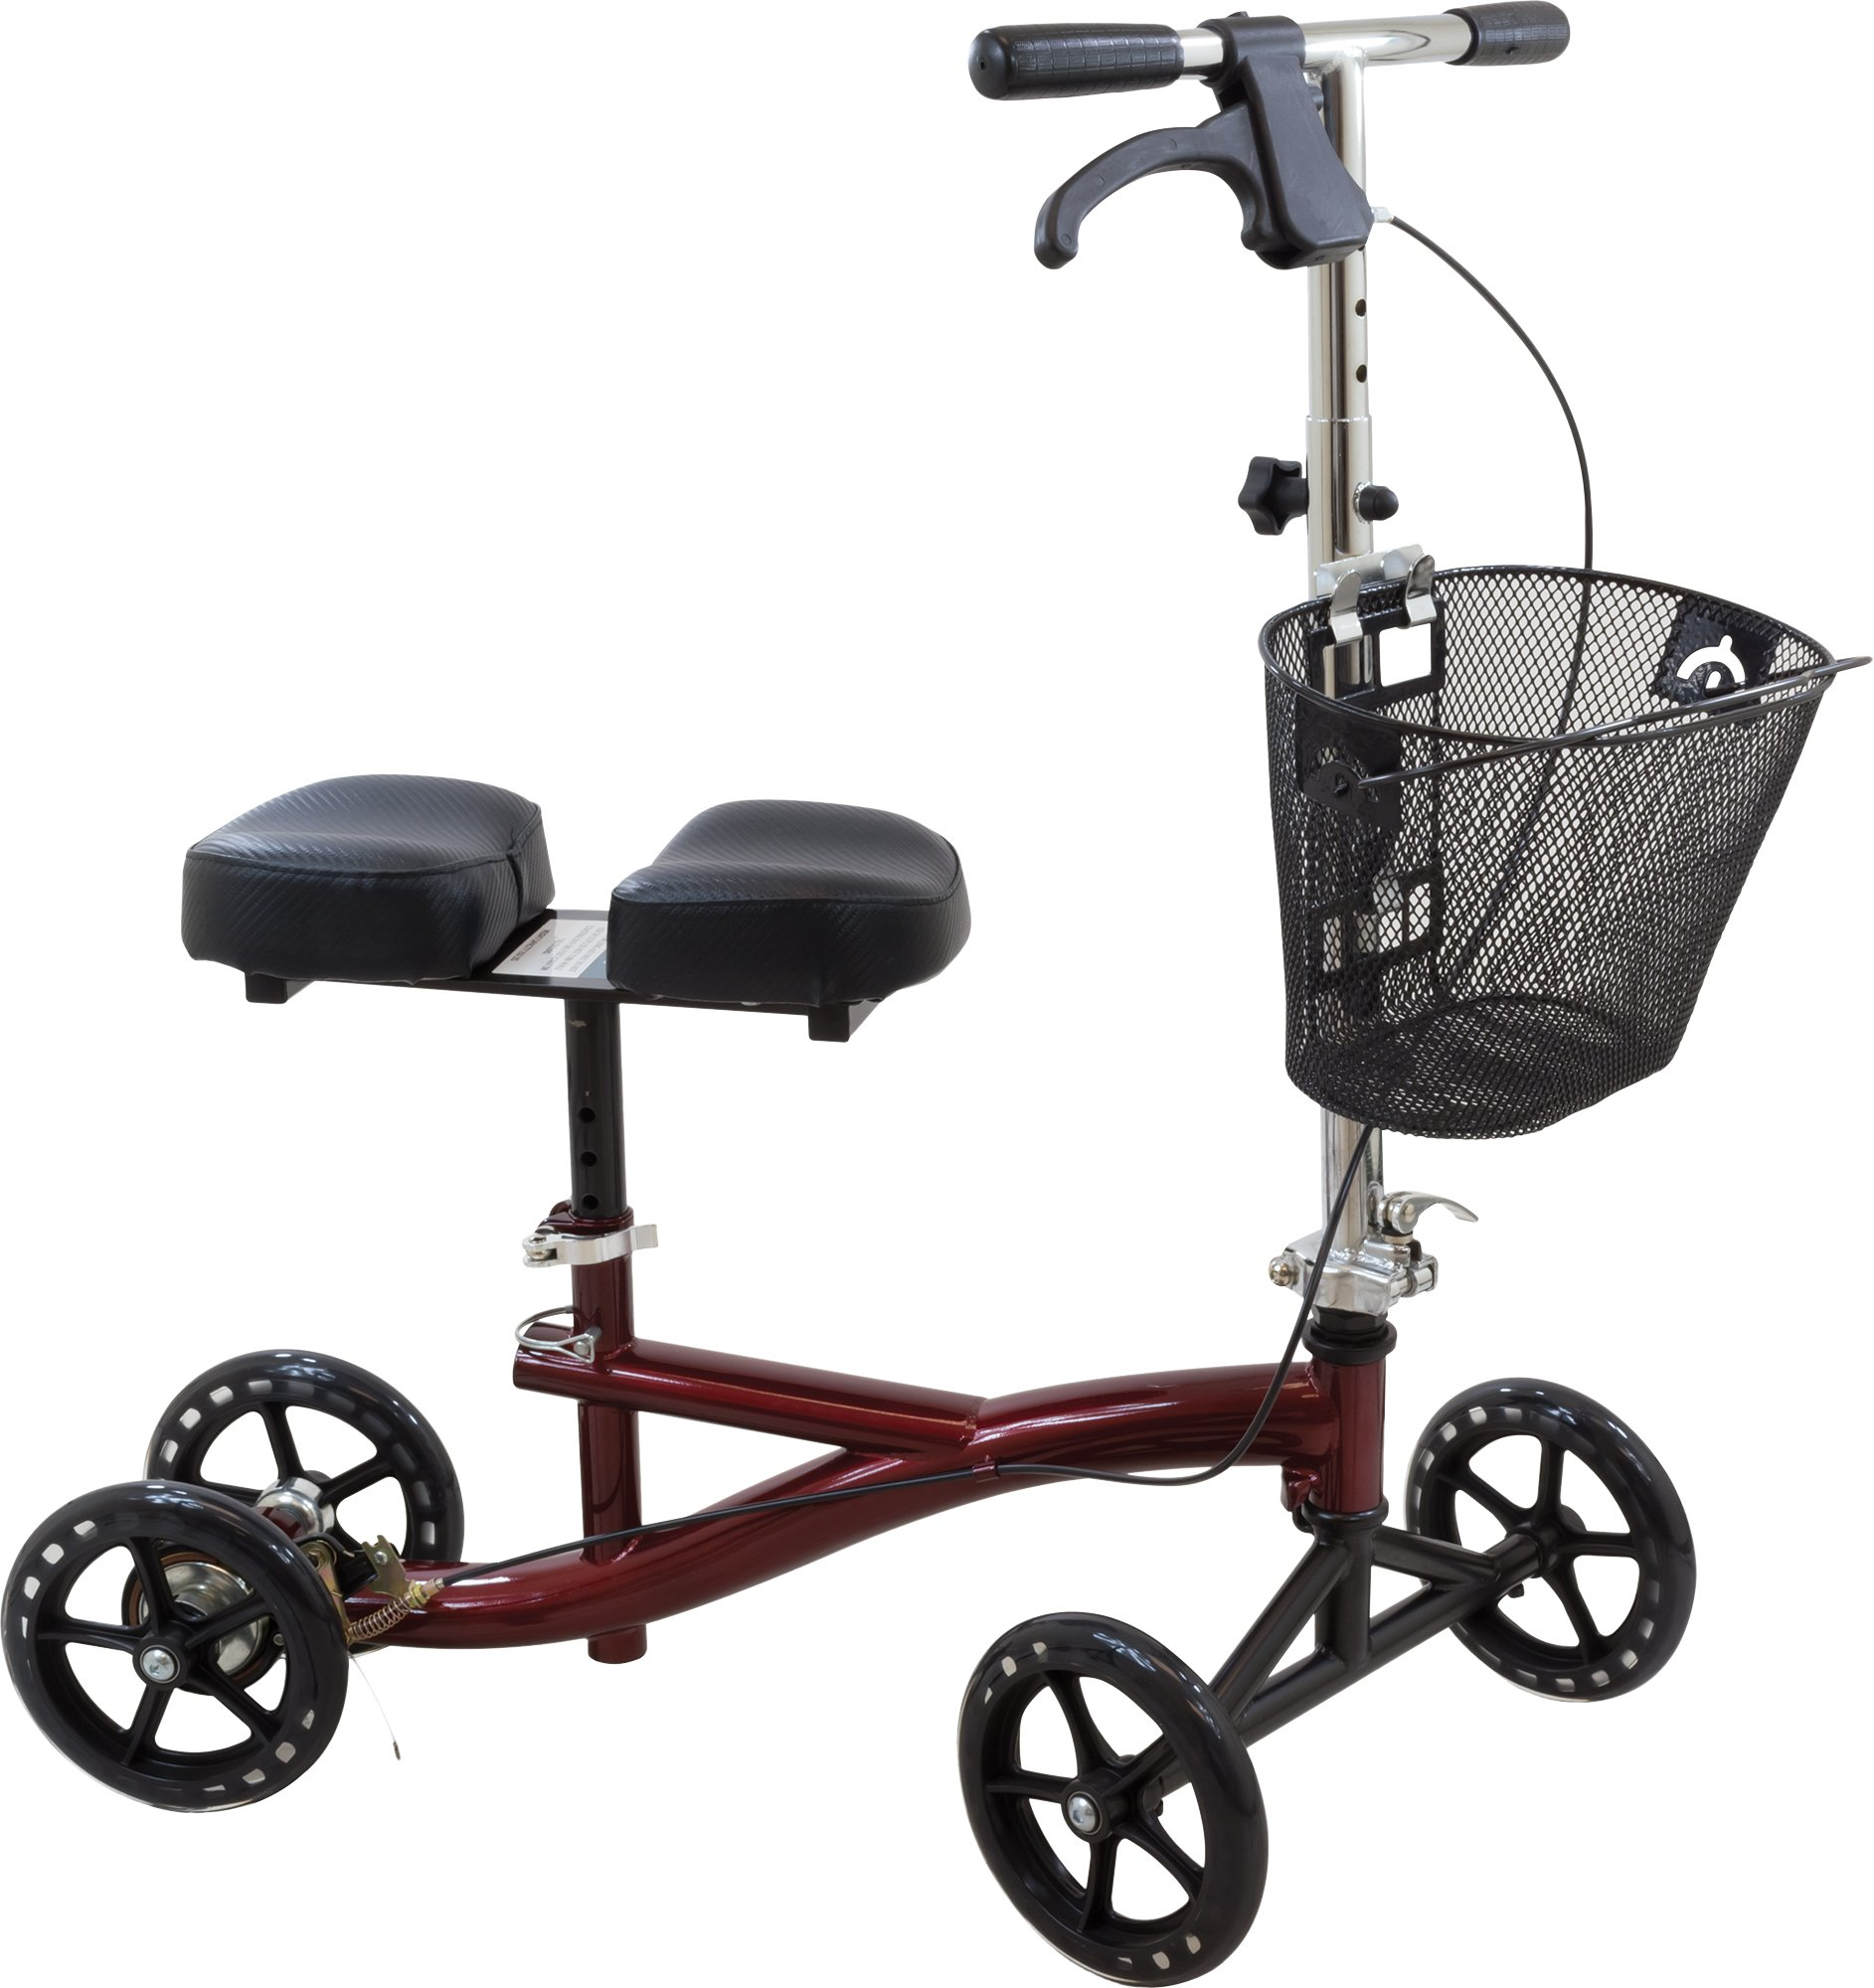 Roscoe Knee Scooter with Basket, Burgundy (ROS-KSBG)